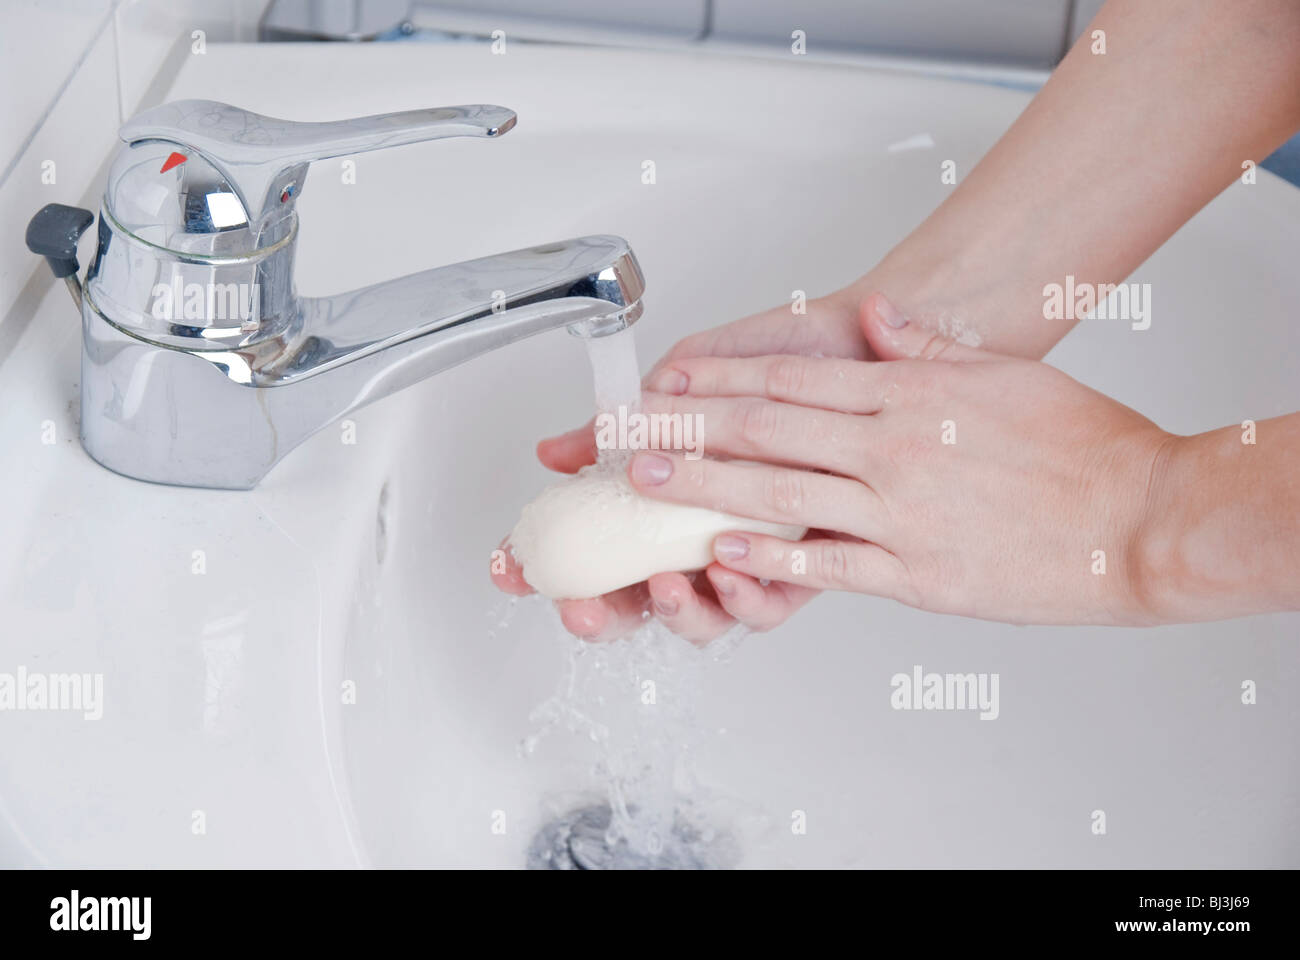 Women washing her hands with soap Stock Photo